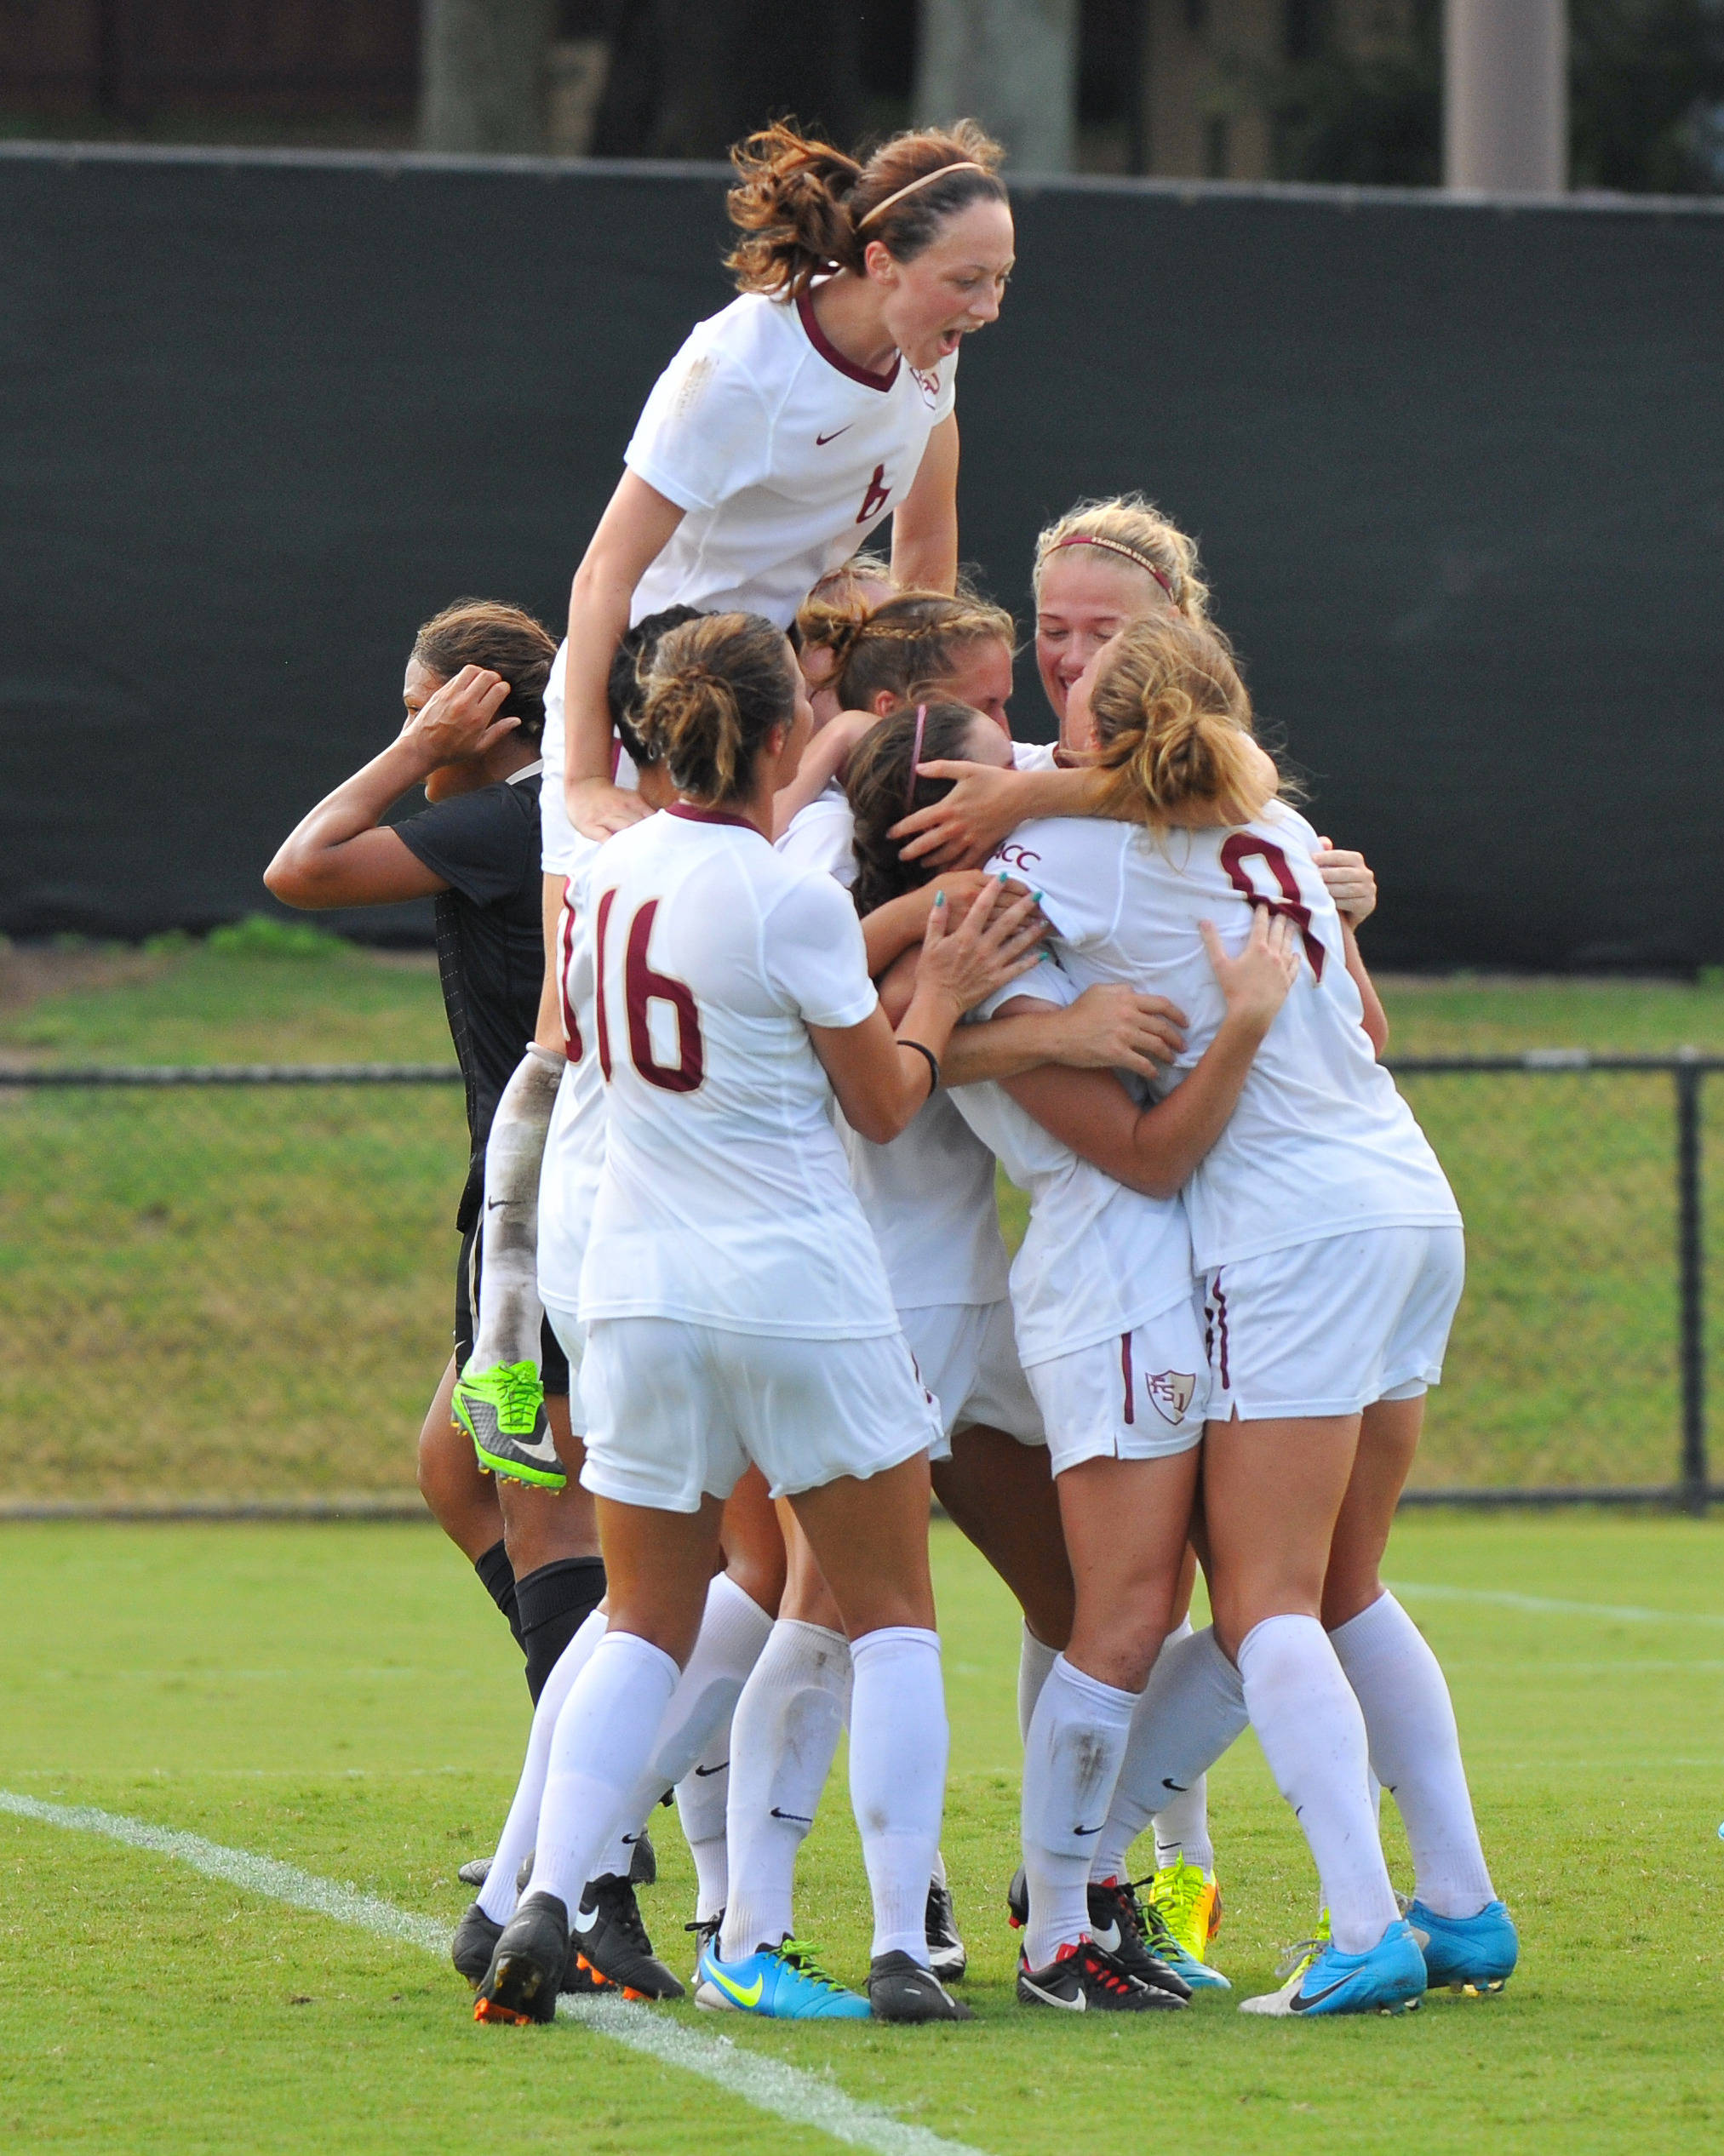 The Seminole celebrate after Crowley's game-winning goal in the first overtime period.